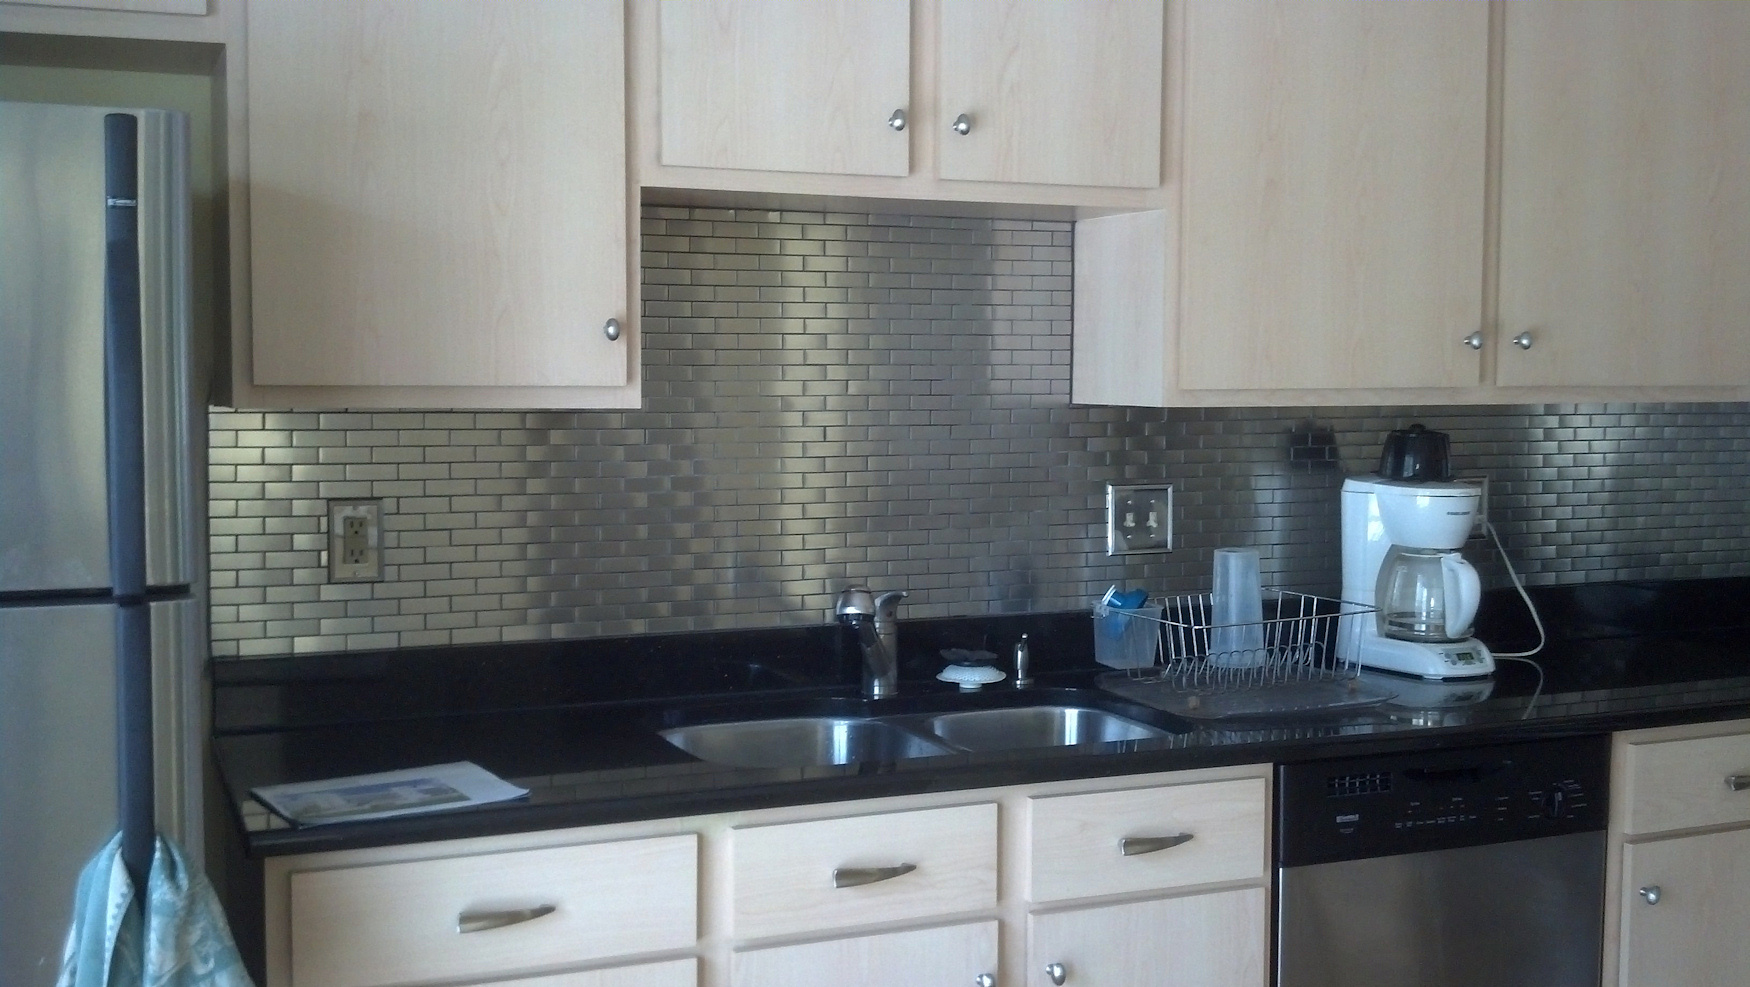 5 diy stainless steel kitchen makeovers on the cheap do 12 unique kitchen backsplash designs